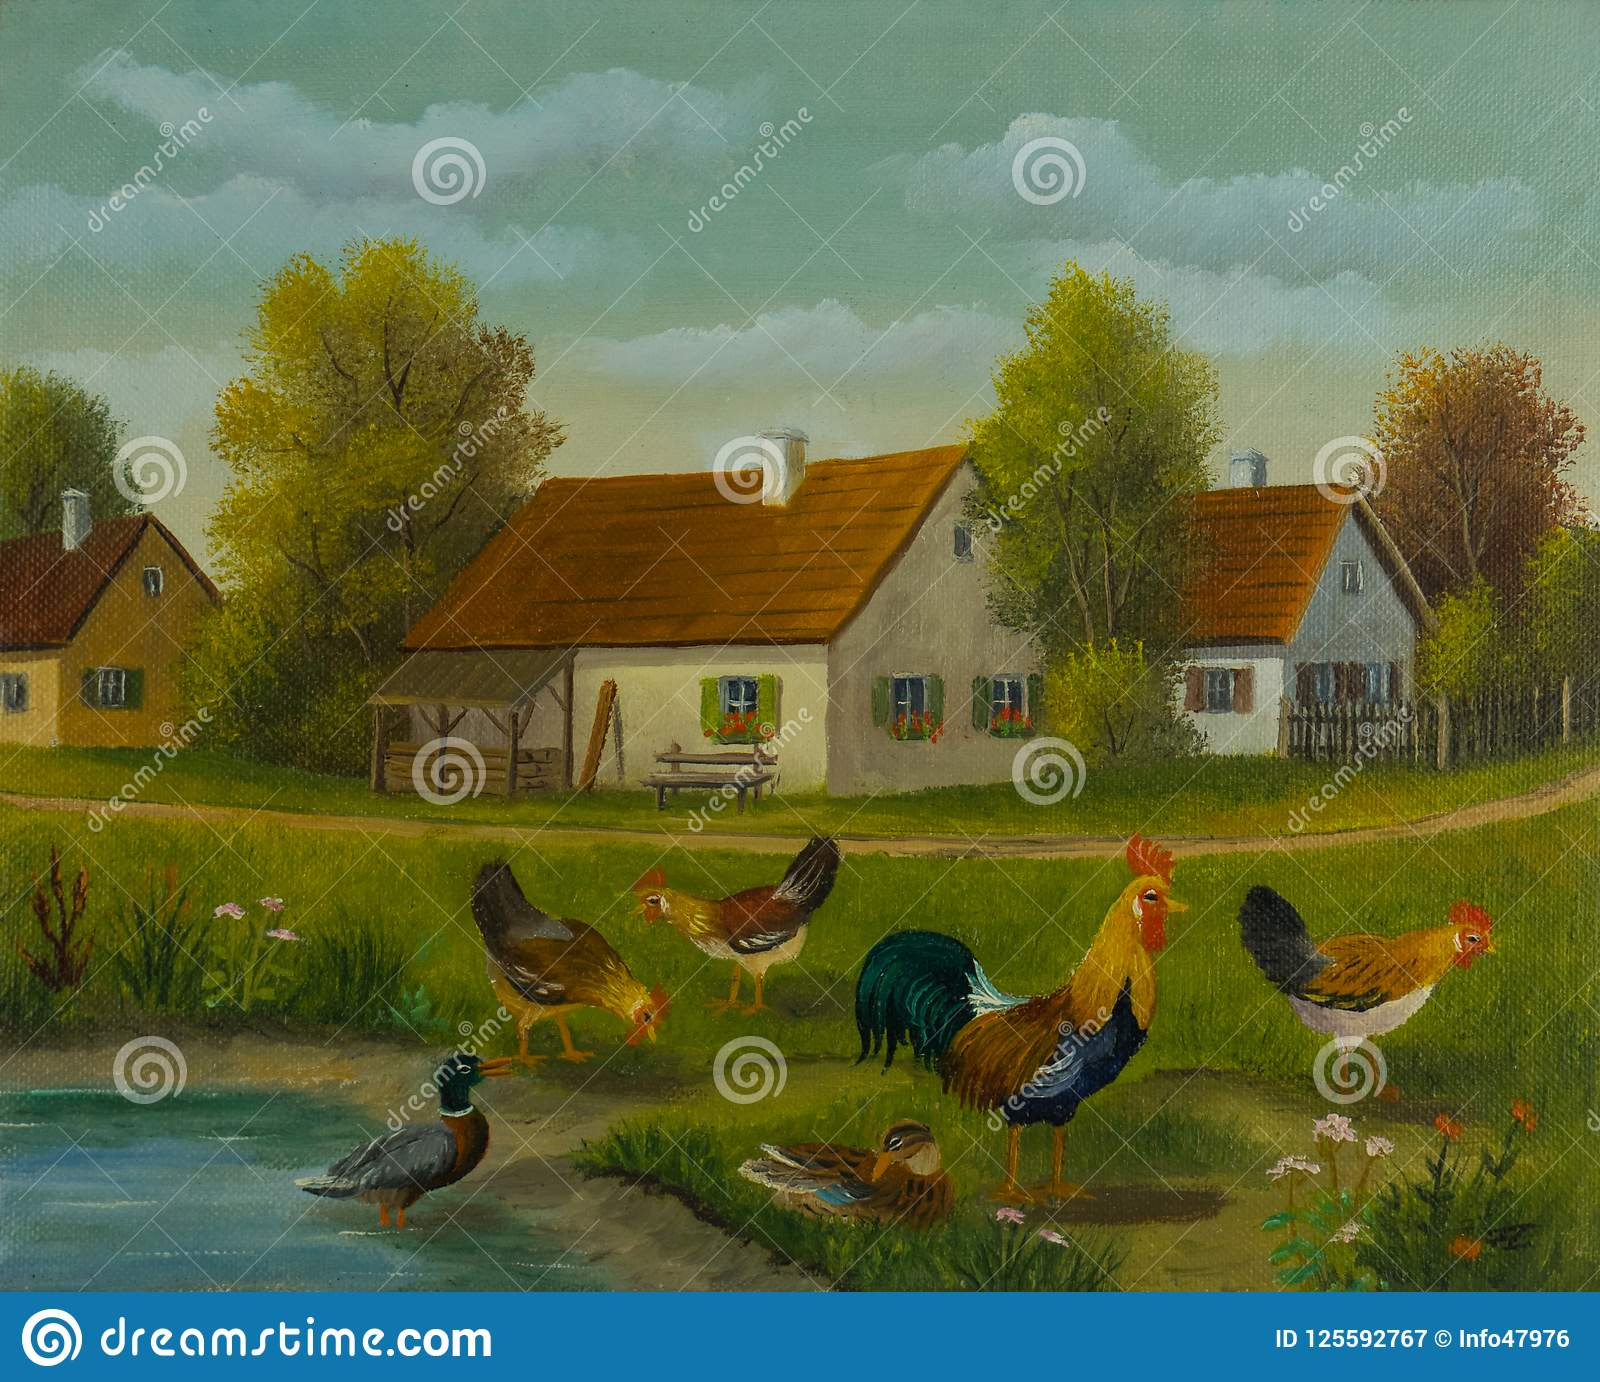 Chickens and ducks at a pond in front of three houses